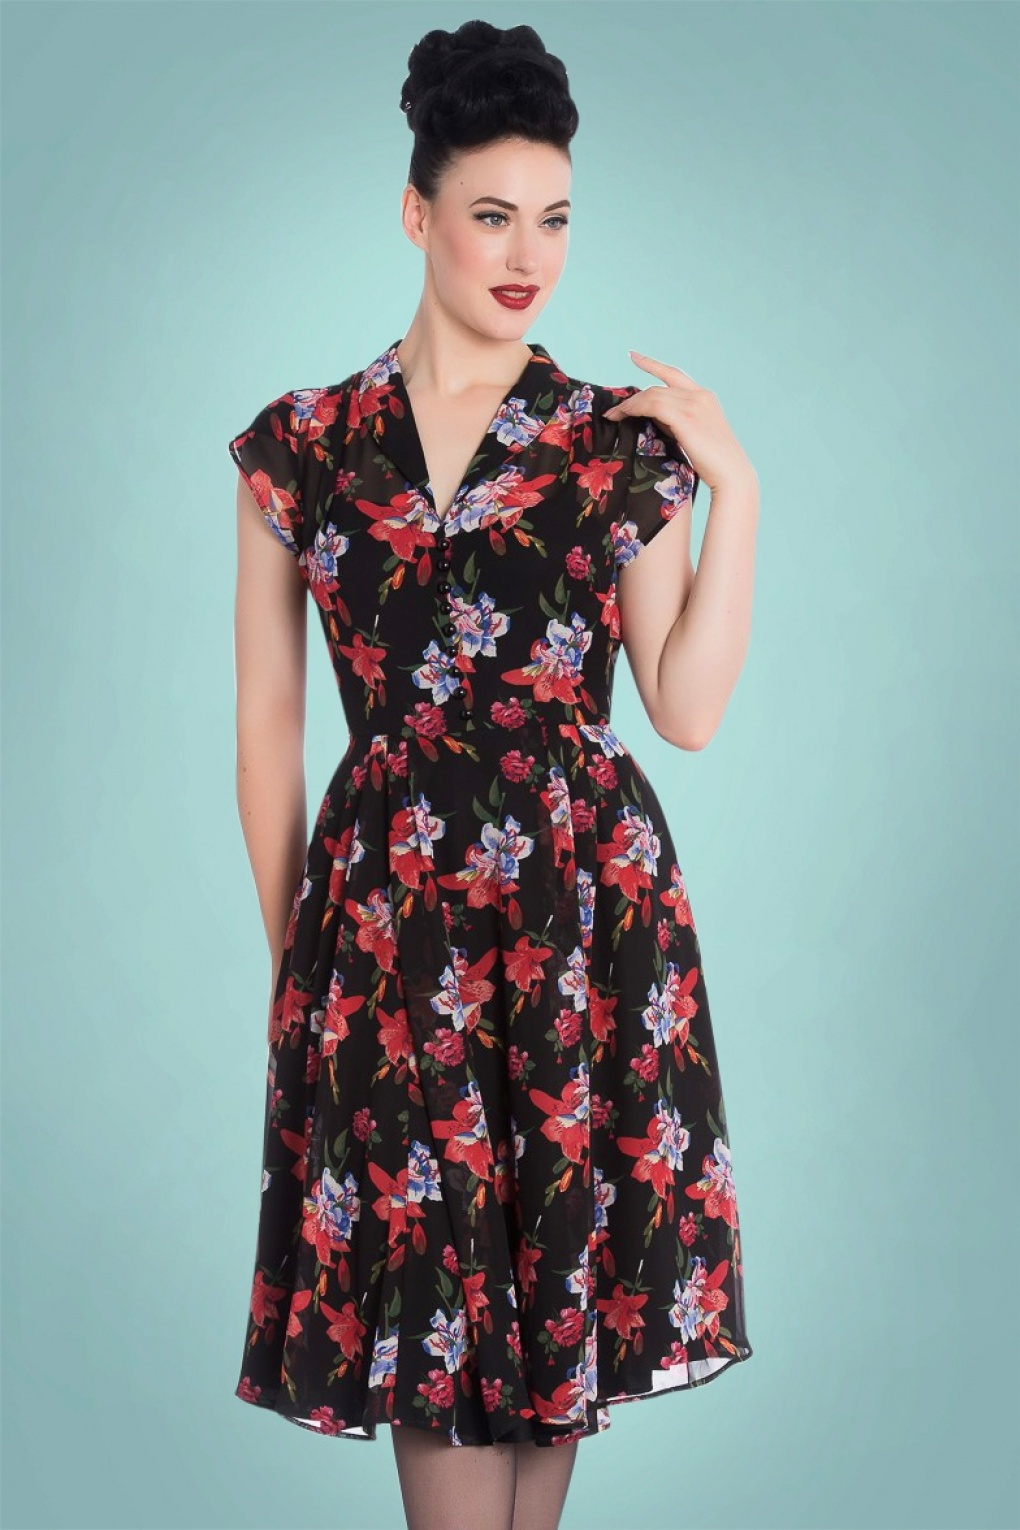 Pin Up Dresses | Pin Up Clothing 50s Rayna Flower Dress in Black £56.76 AT vintagedancer.com